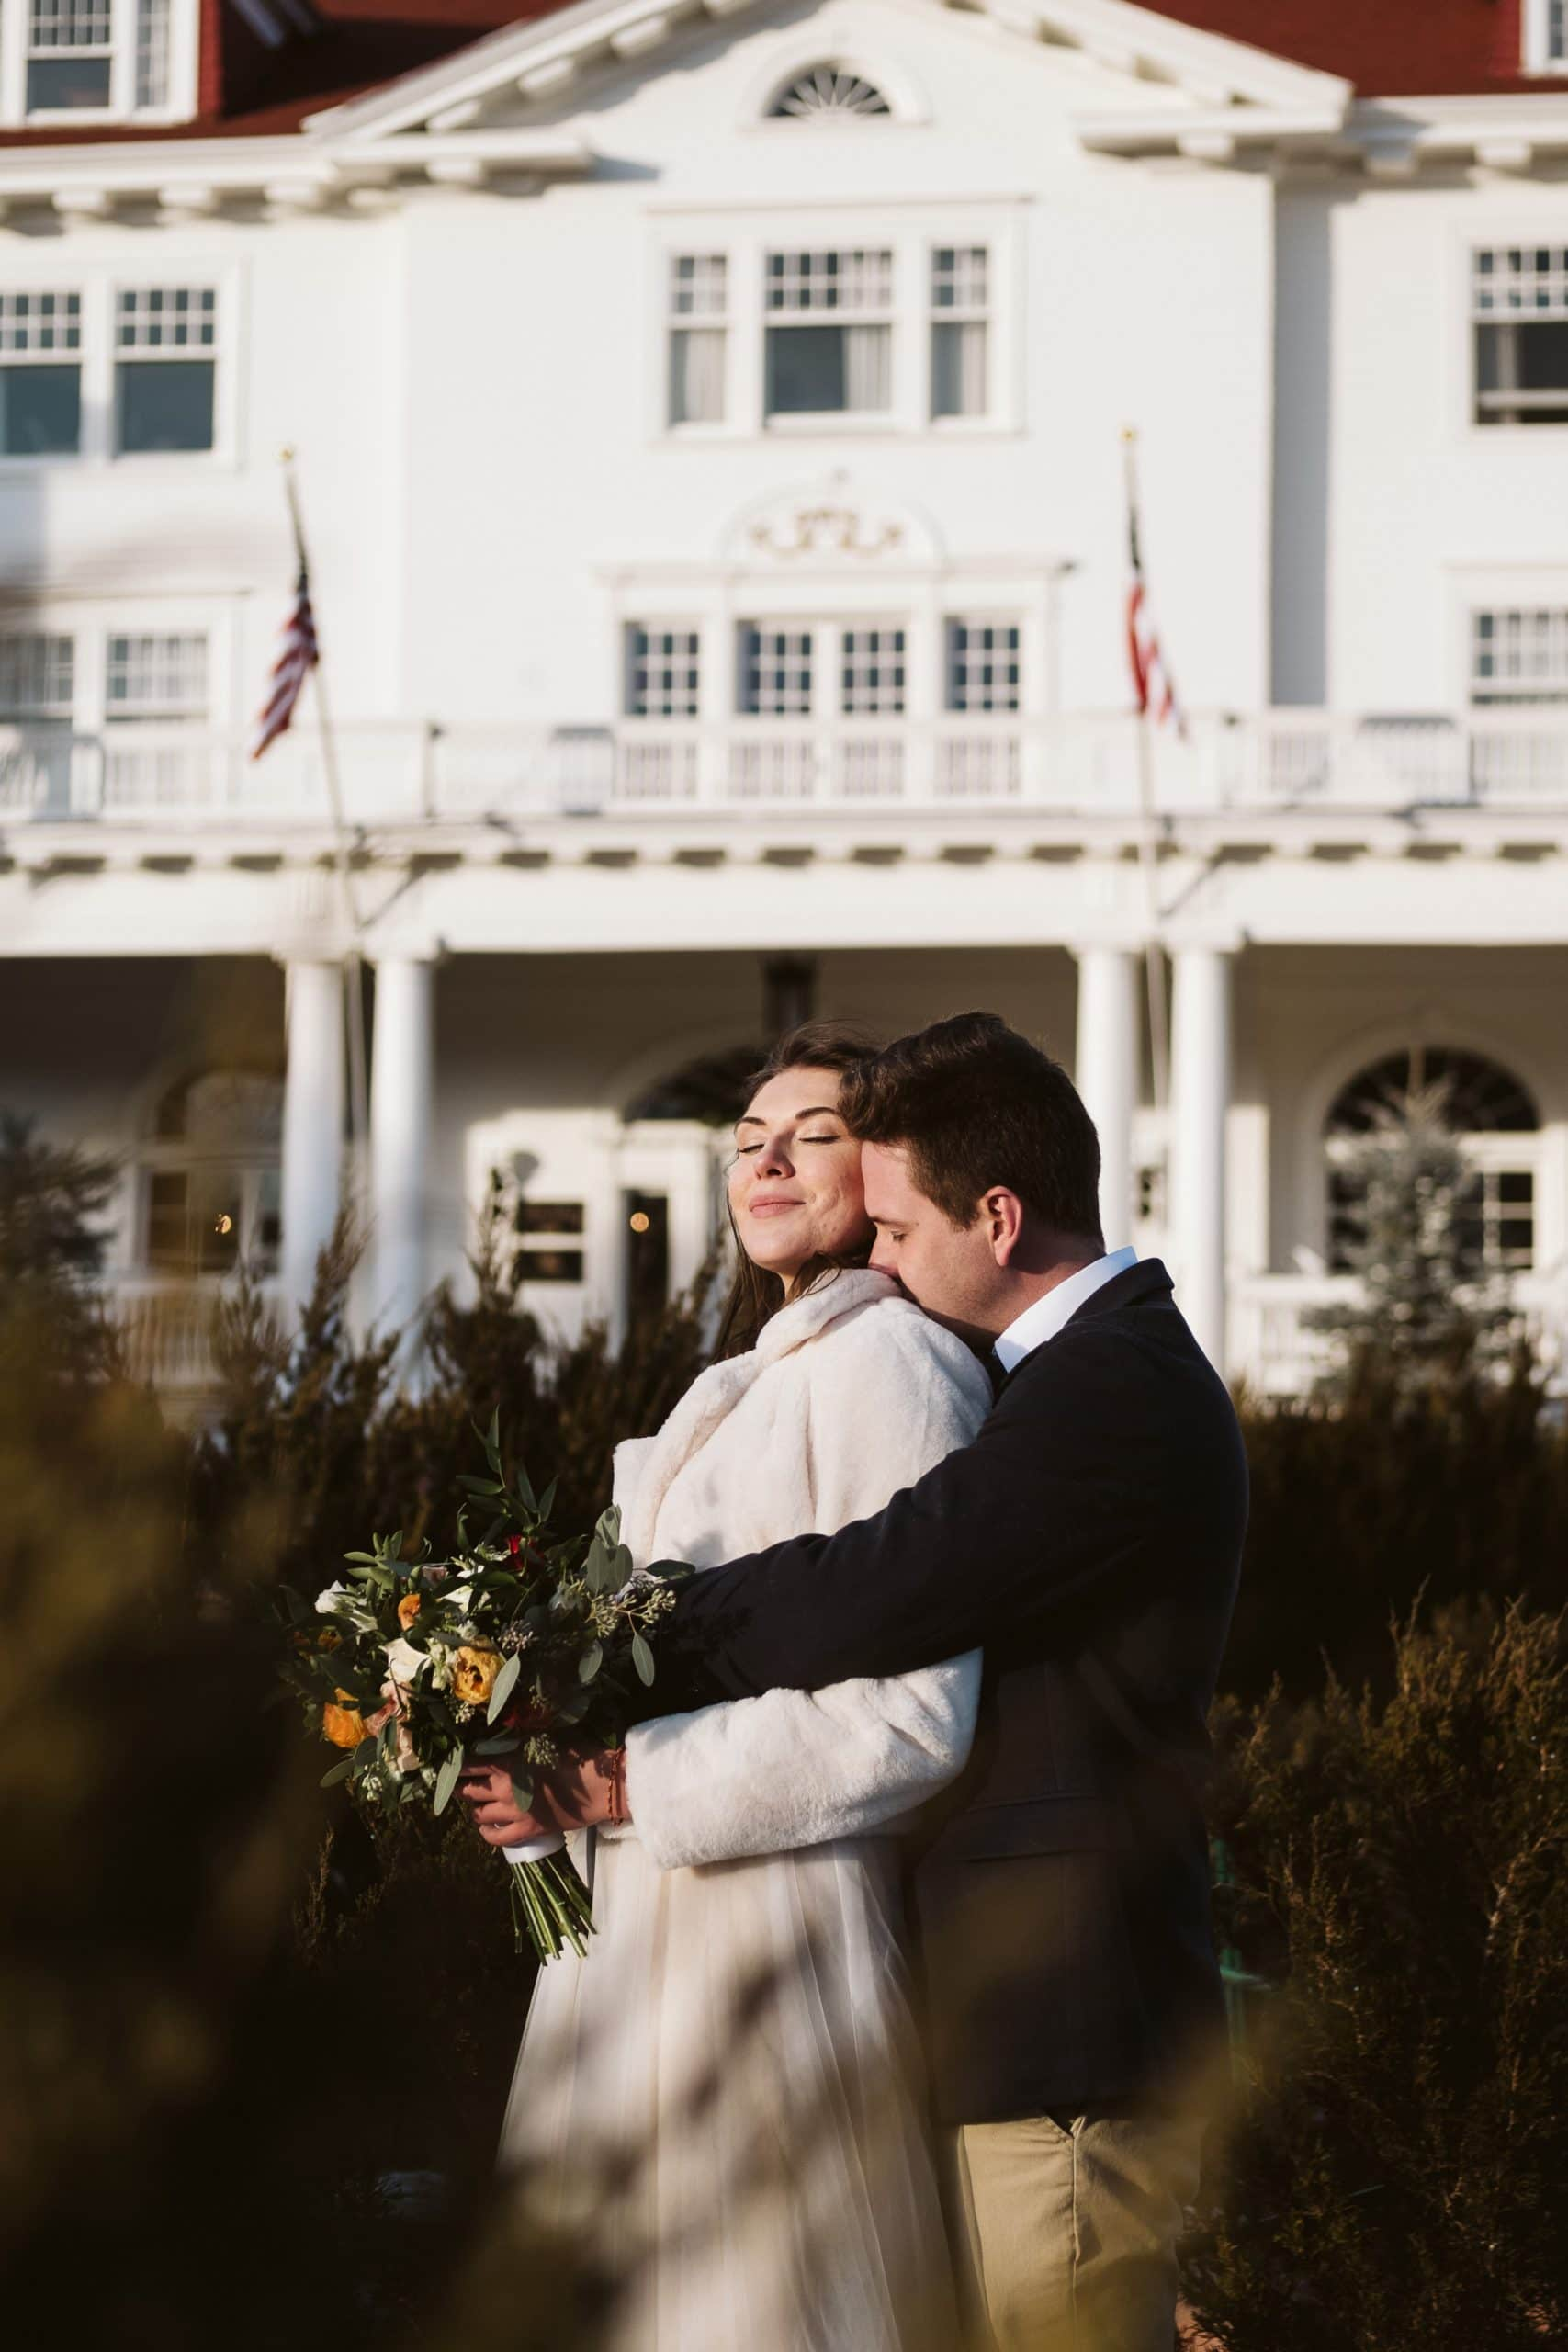 The Stanley Hotel wedding in Estes Park, Colorado.